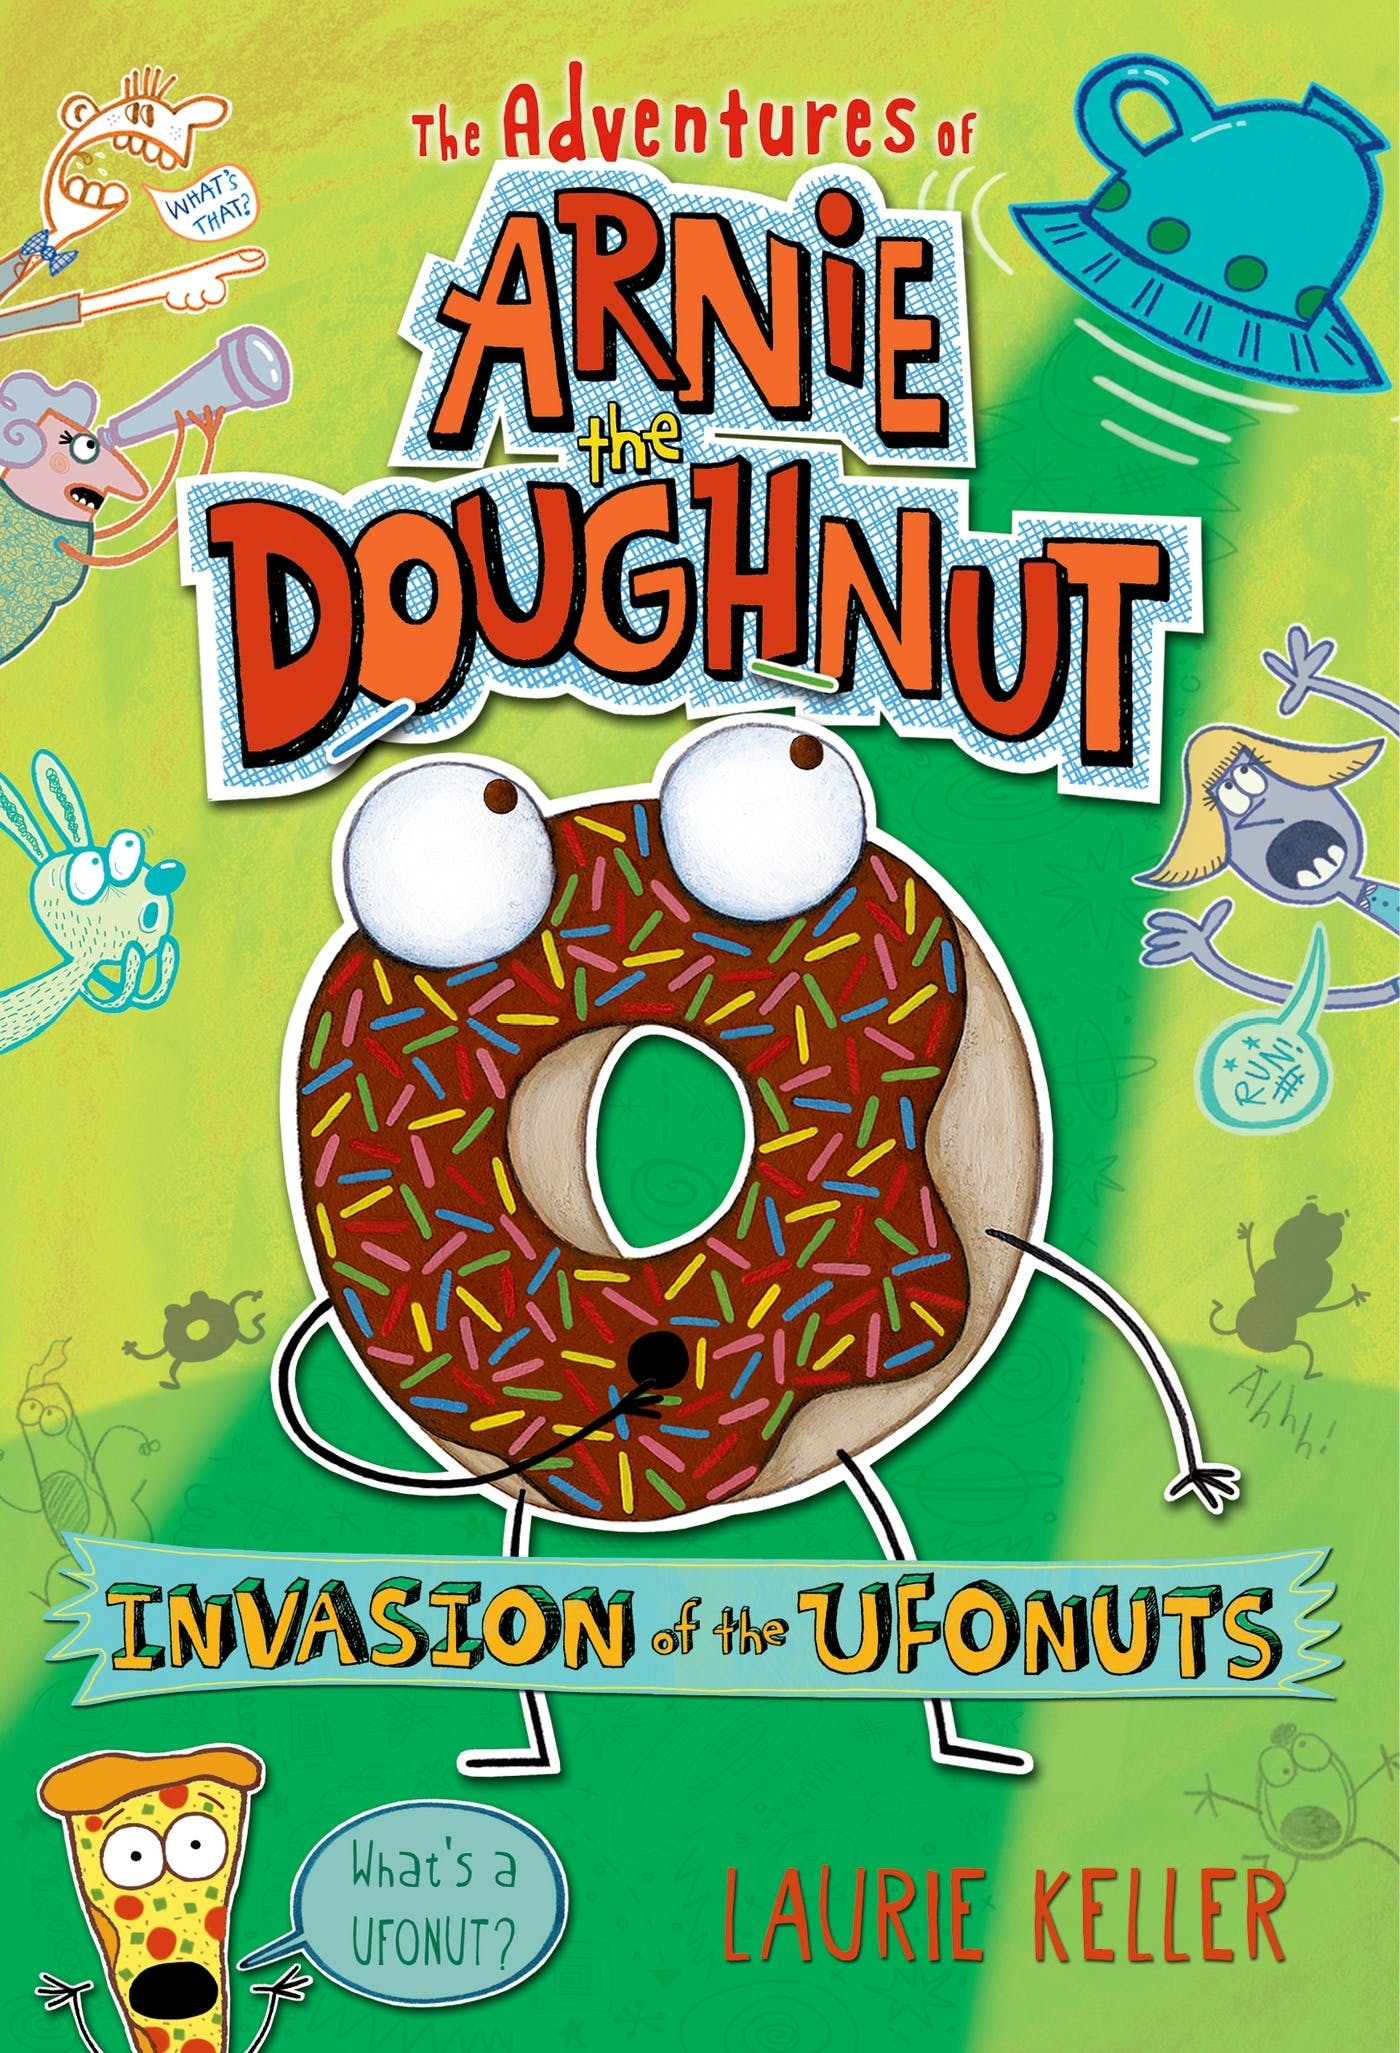 Image of Invasion of the Ufonuts